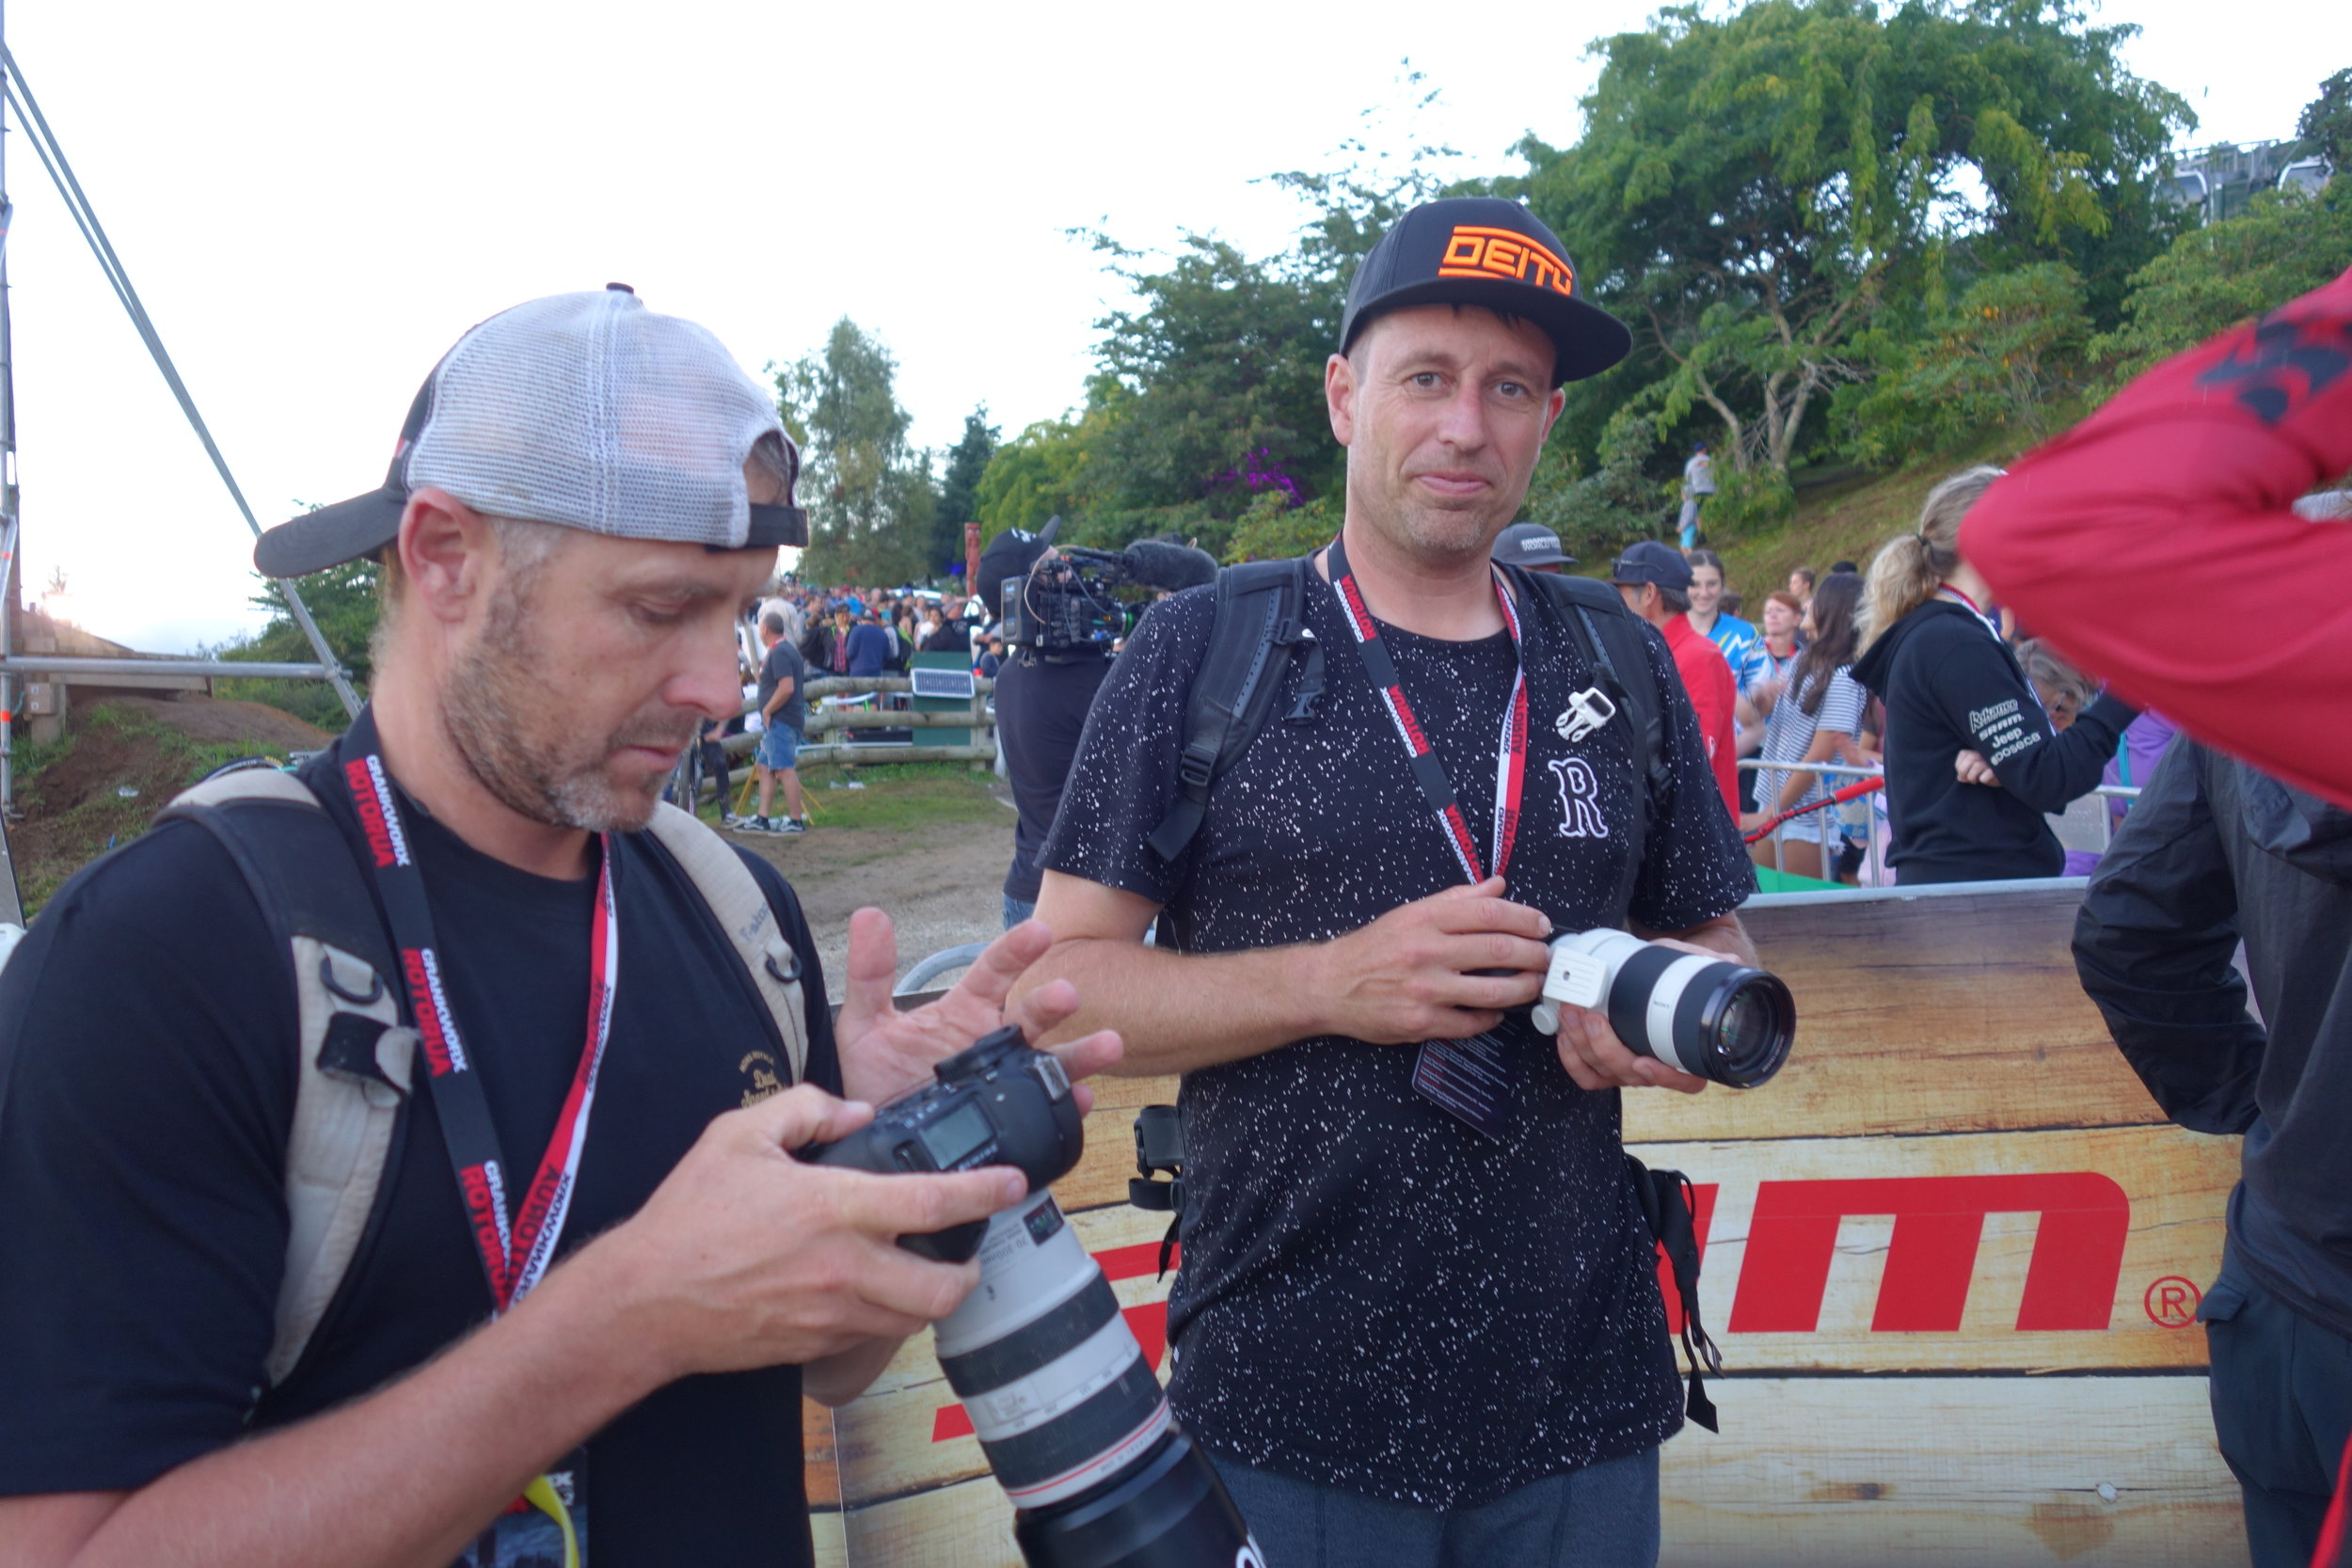 Neil Kerr from Spoke and Jeff Carter from therodfather.co.nz